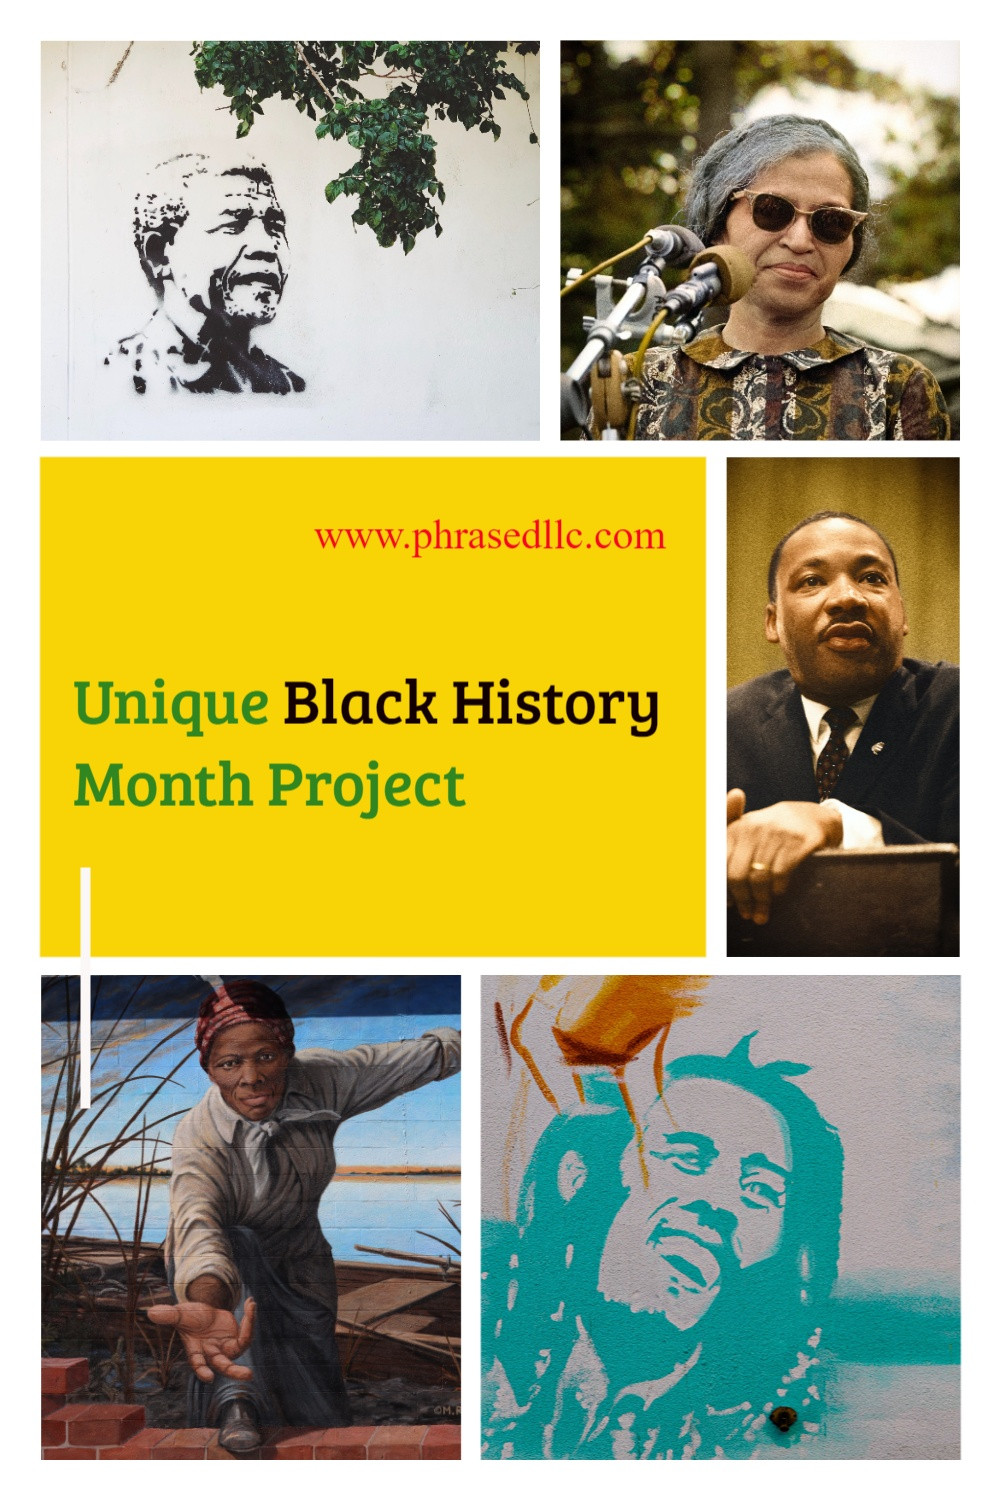 Want a unique black history lesson for kids that they will find exciting and relevant? Want to show them to relationship between Nelson Mandela and Chadwick Boseman? Well, the New Stars of Black History project is what you need.